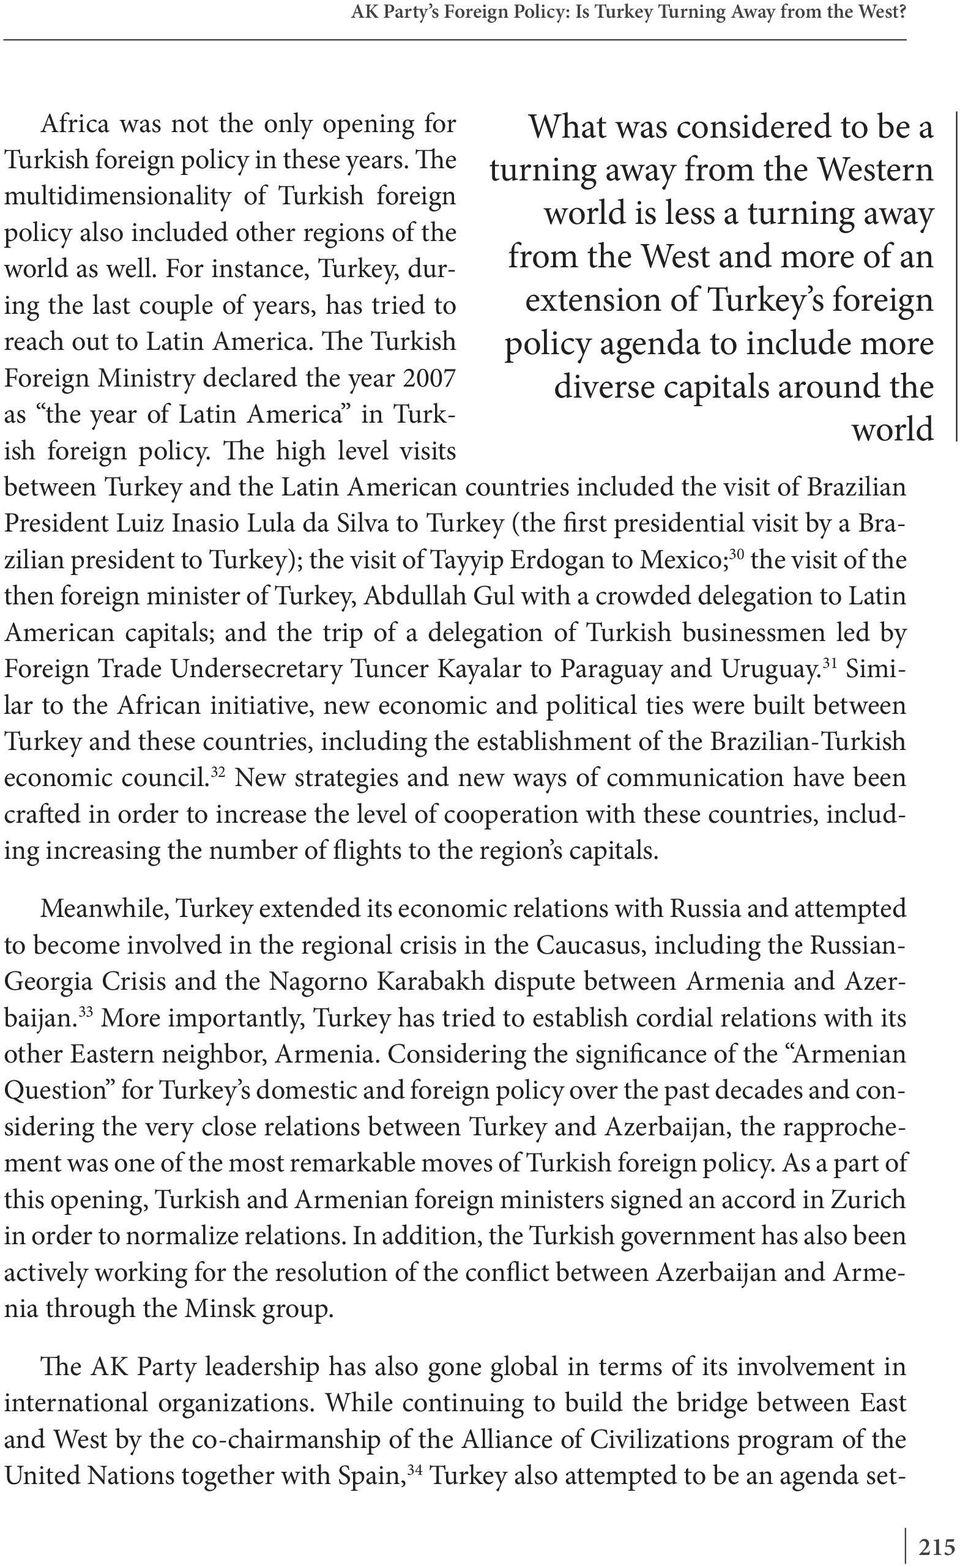 the world Africa was not the only opening for Turkish foreign policy in these years. The multidimensionality of Turkish foreign policy also included other regions of the world as well.